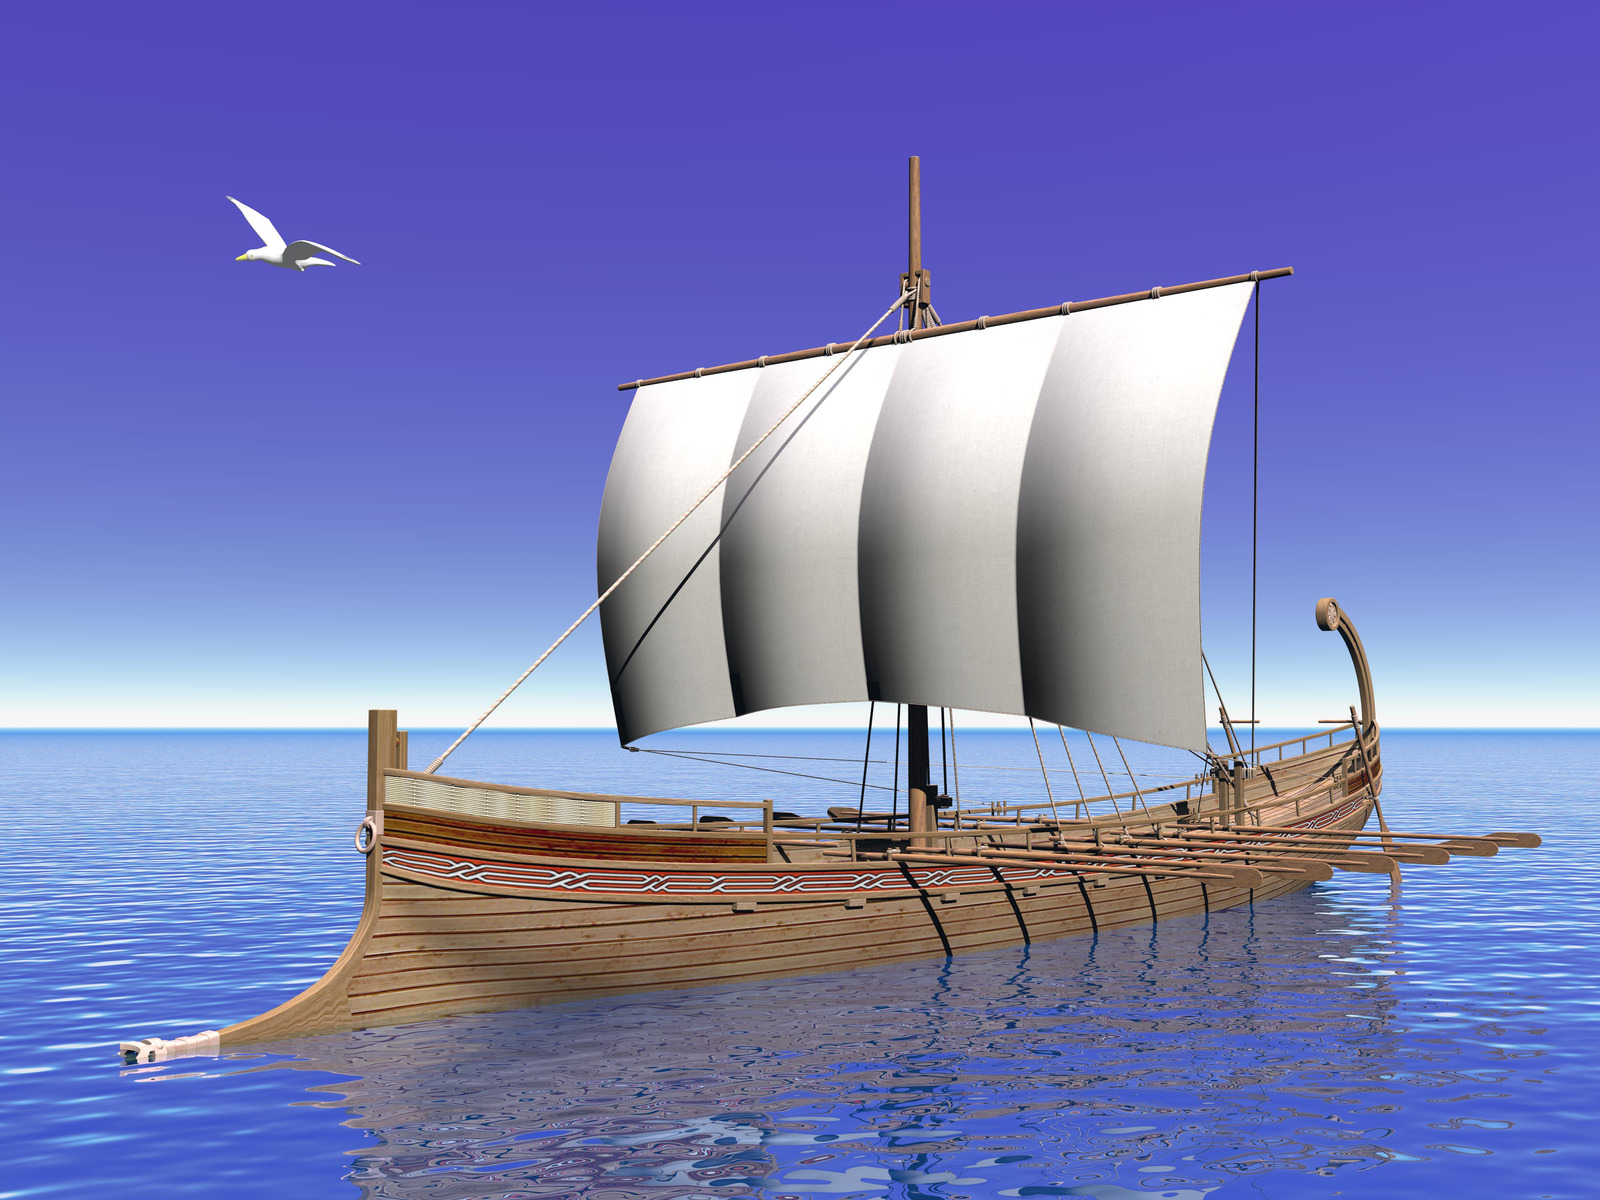 Close up of greek boat on the ocean with seagull flying around in blue background